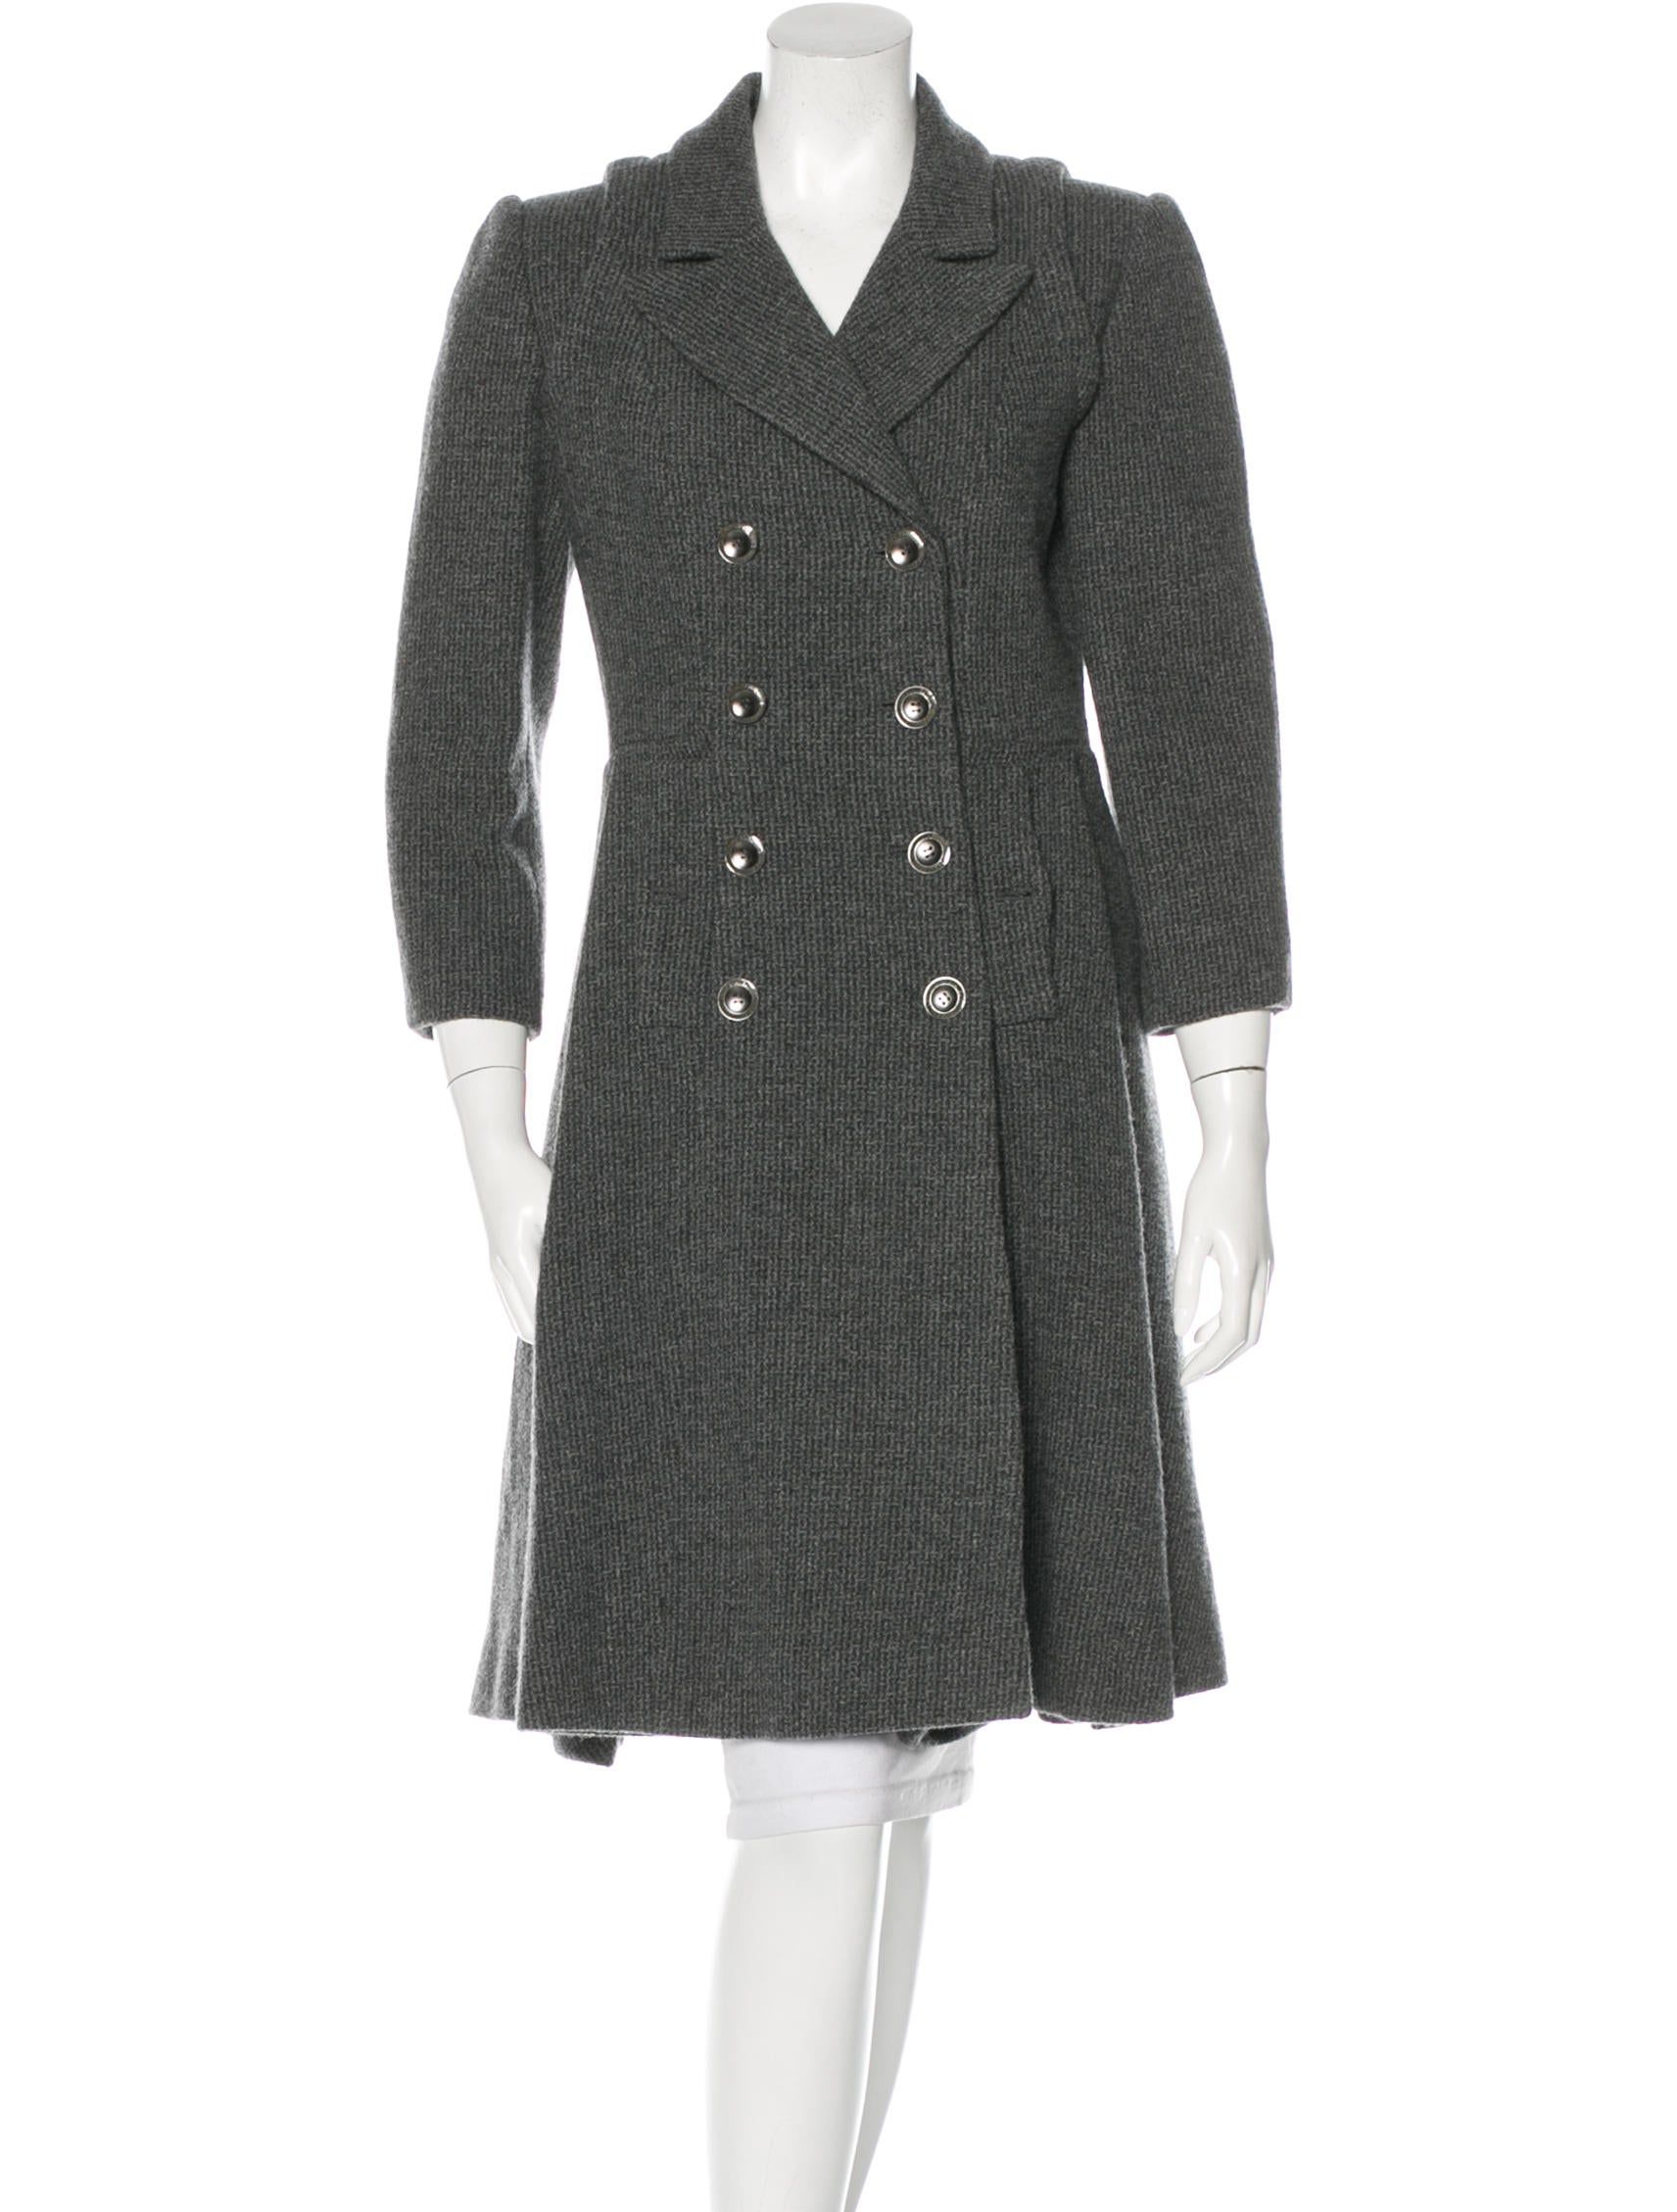 Shop from the world's largest selection and best deals for Women's Wool Blend Coats and Jackets. Free delivery and free returns on eBay Plus items.